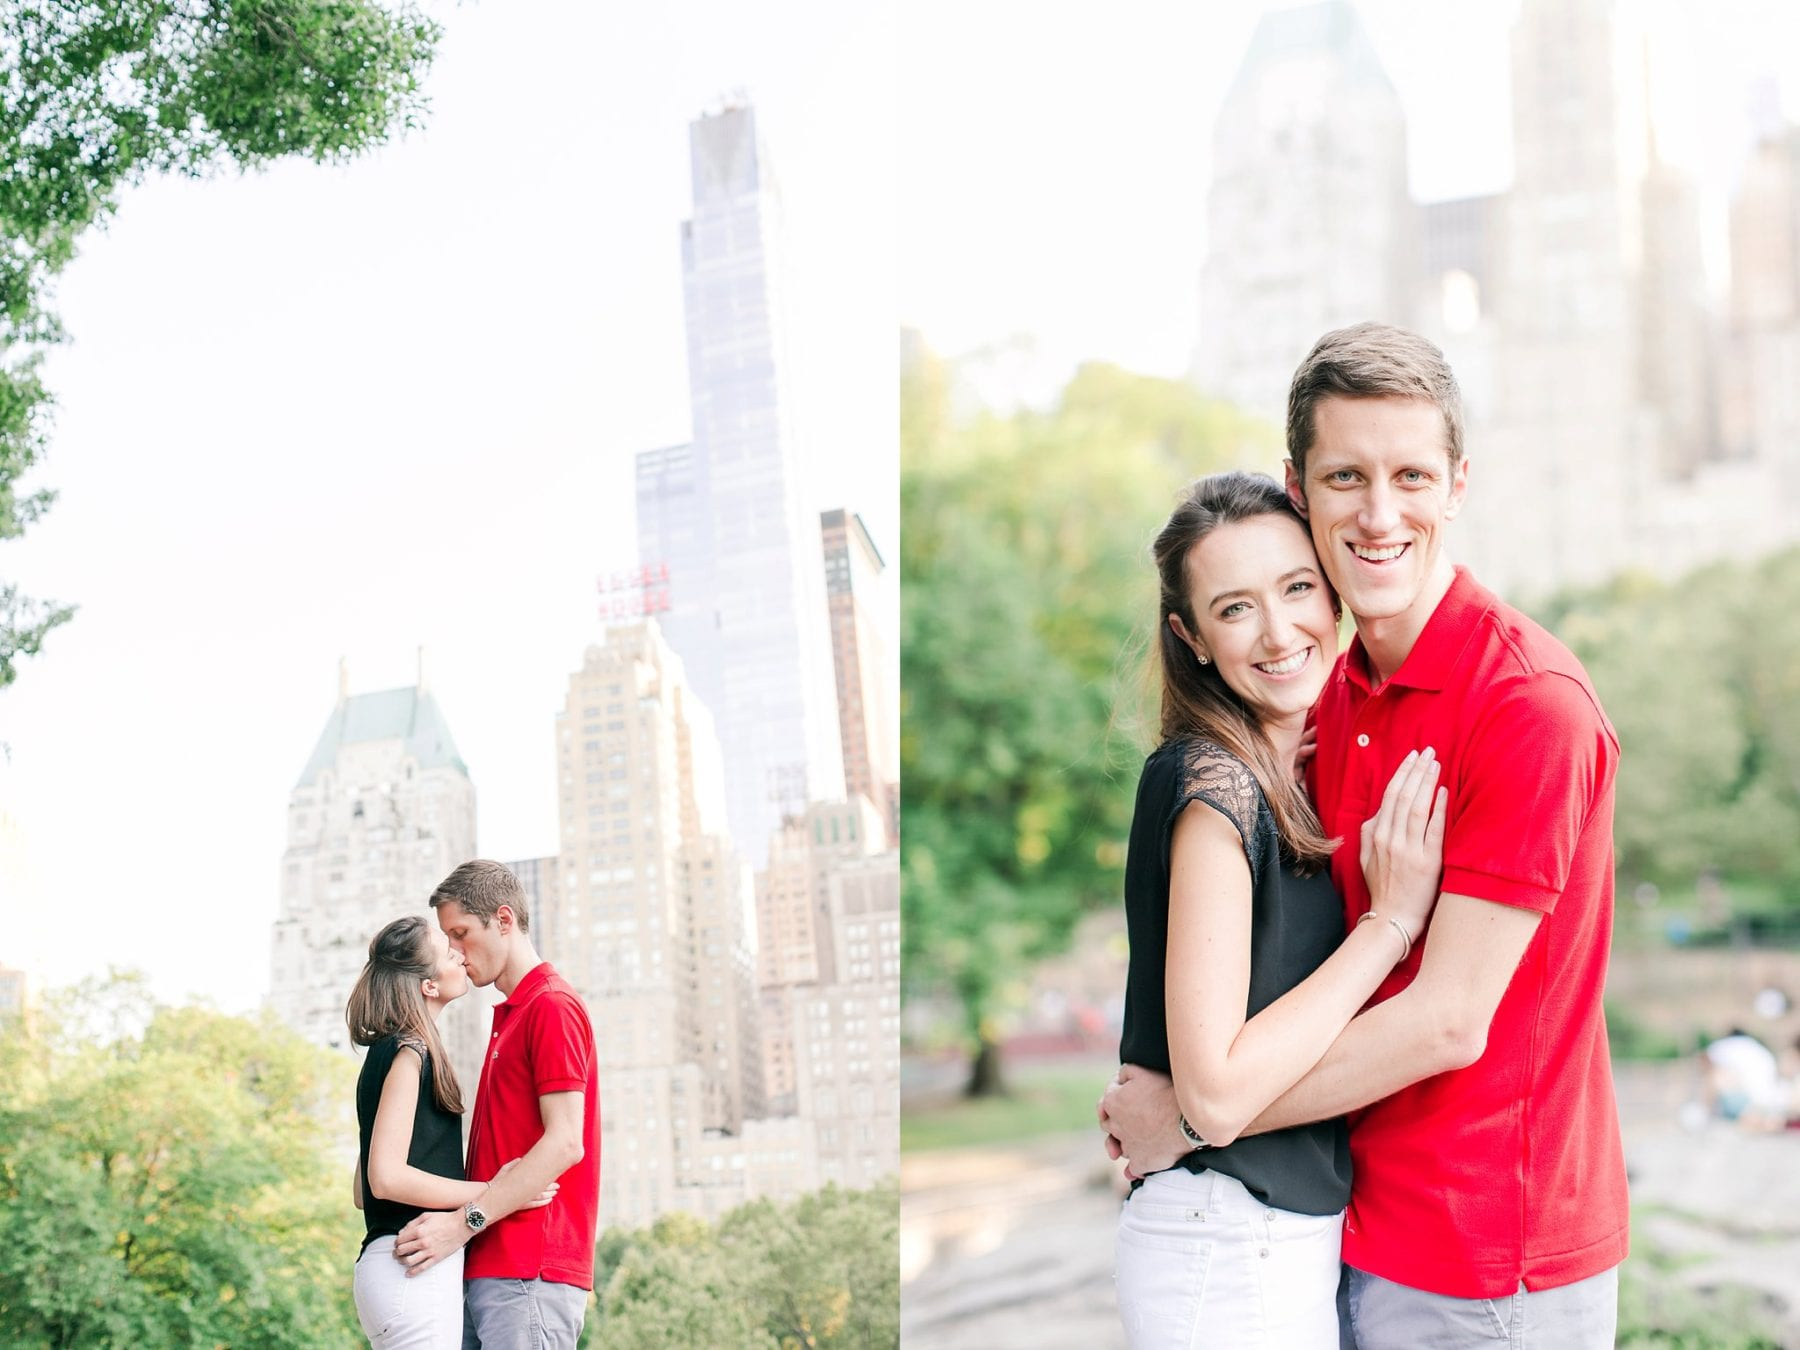 West Village Central Park Engagement Photos NYC Wedding Photographer Megan Kelsey Photography-196.jpg